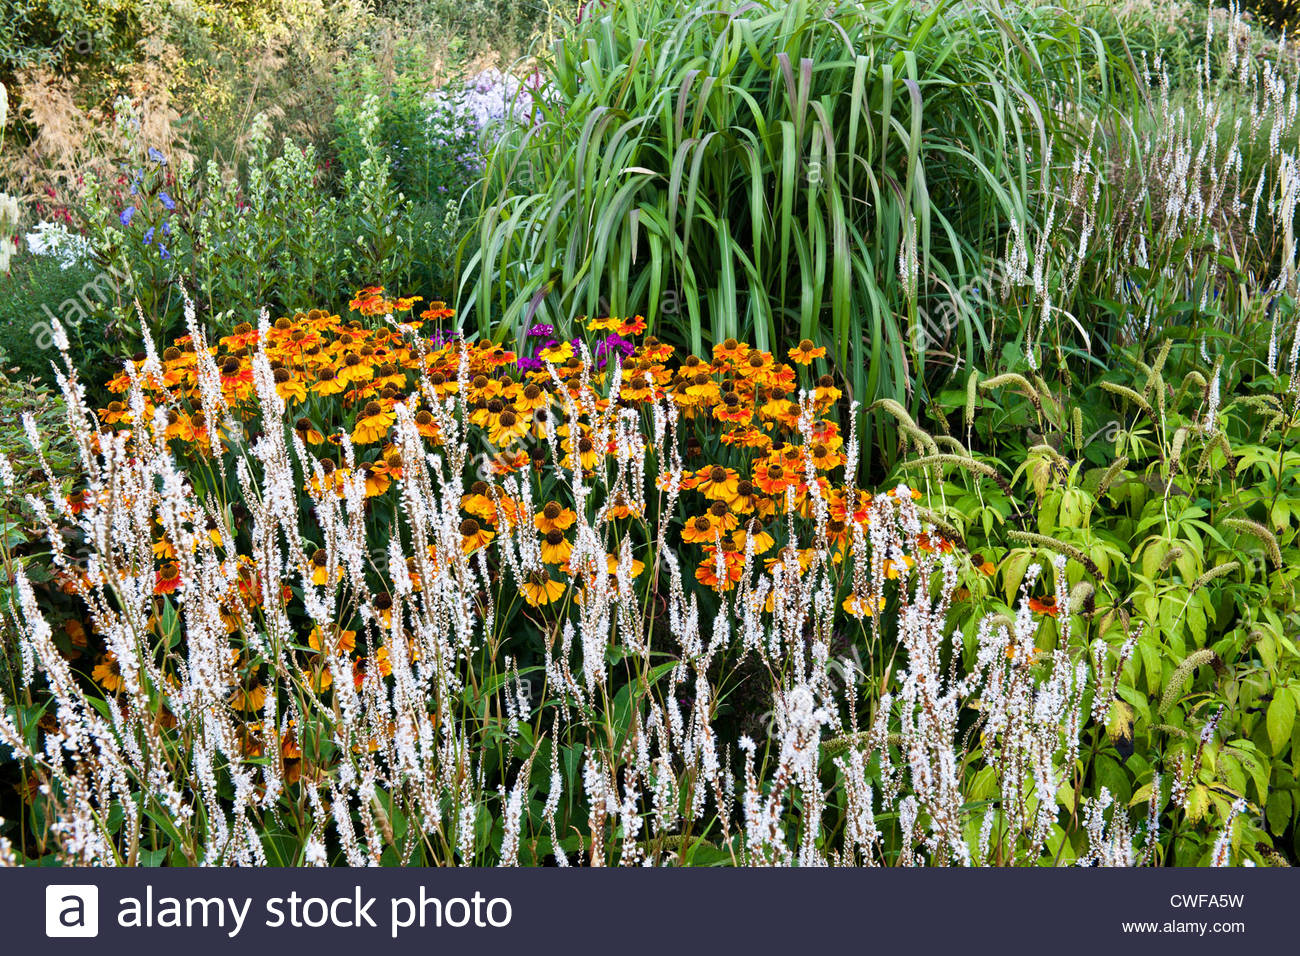 knotweed Persicaria polymorpha amplexicaulis Alba common sneezeweed Helenium Ring of Fire autumnale polymorpha ornamental - Stock Image